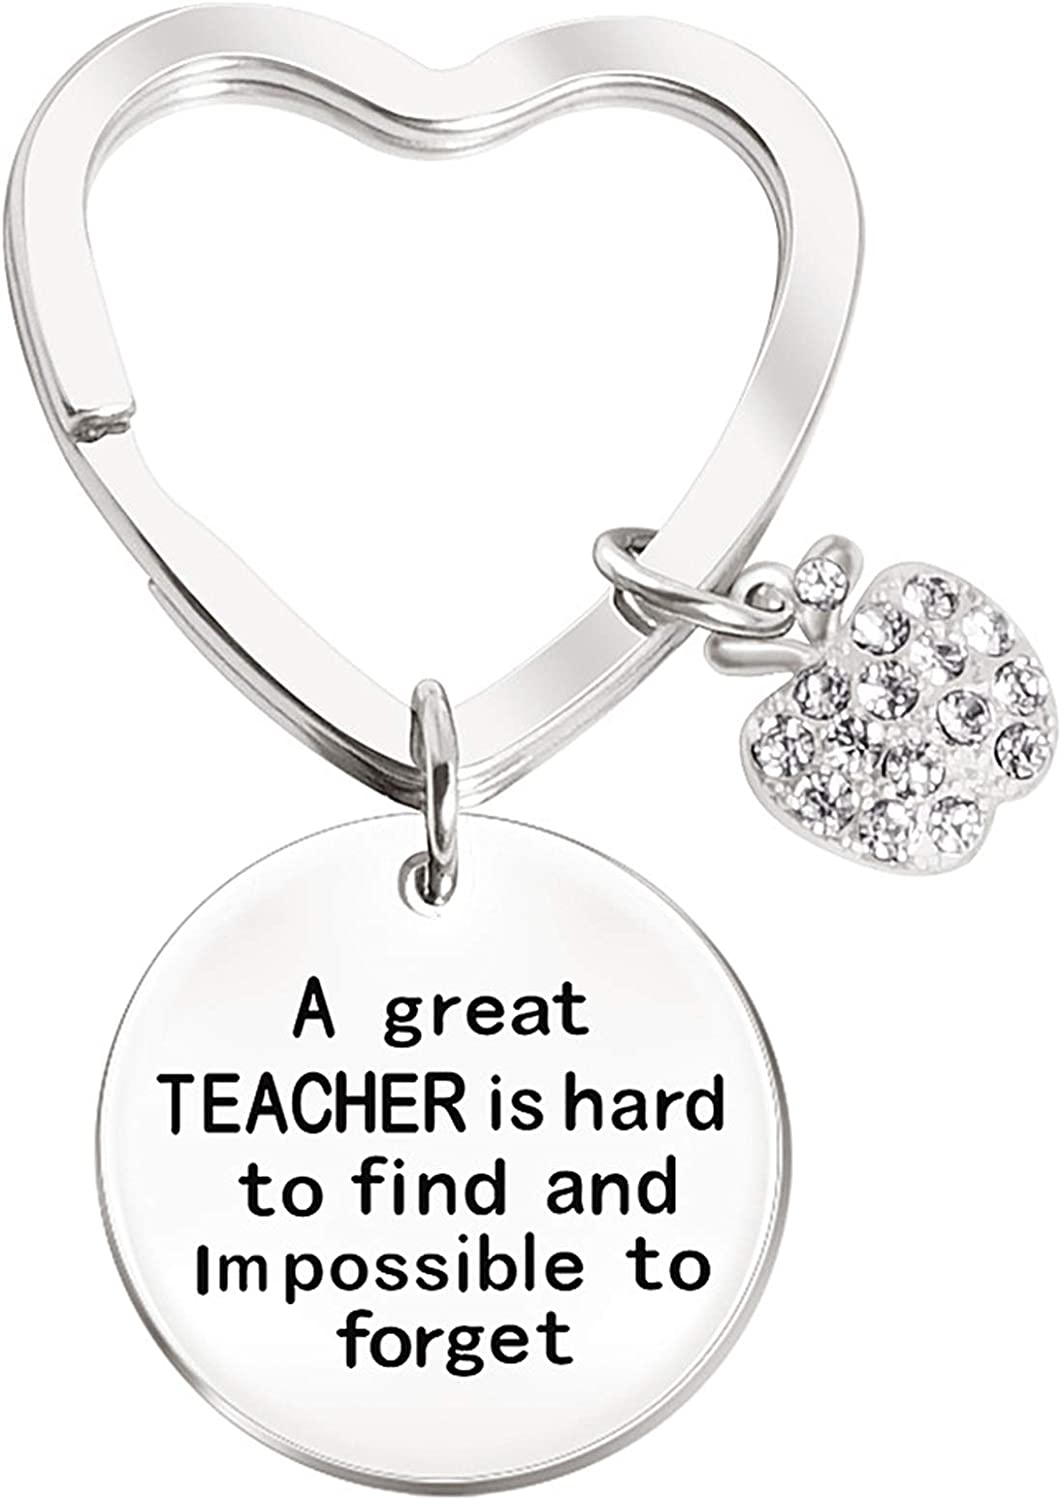 Teacher Keychain for Gift Women Appreciation Teacher Keychain Great Teacher is Hard to Find and Impossible to Forget Diamond Apple Charm Key Ring Jewelry For Teacher's Day,Thanksgiving, Christmas